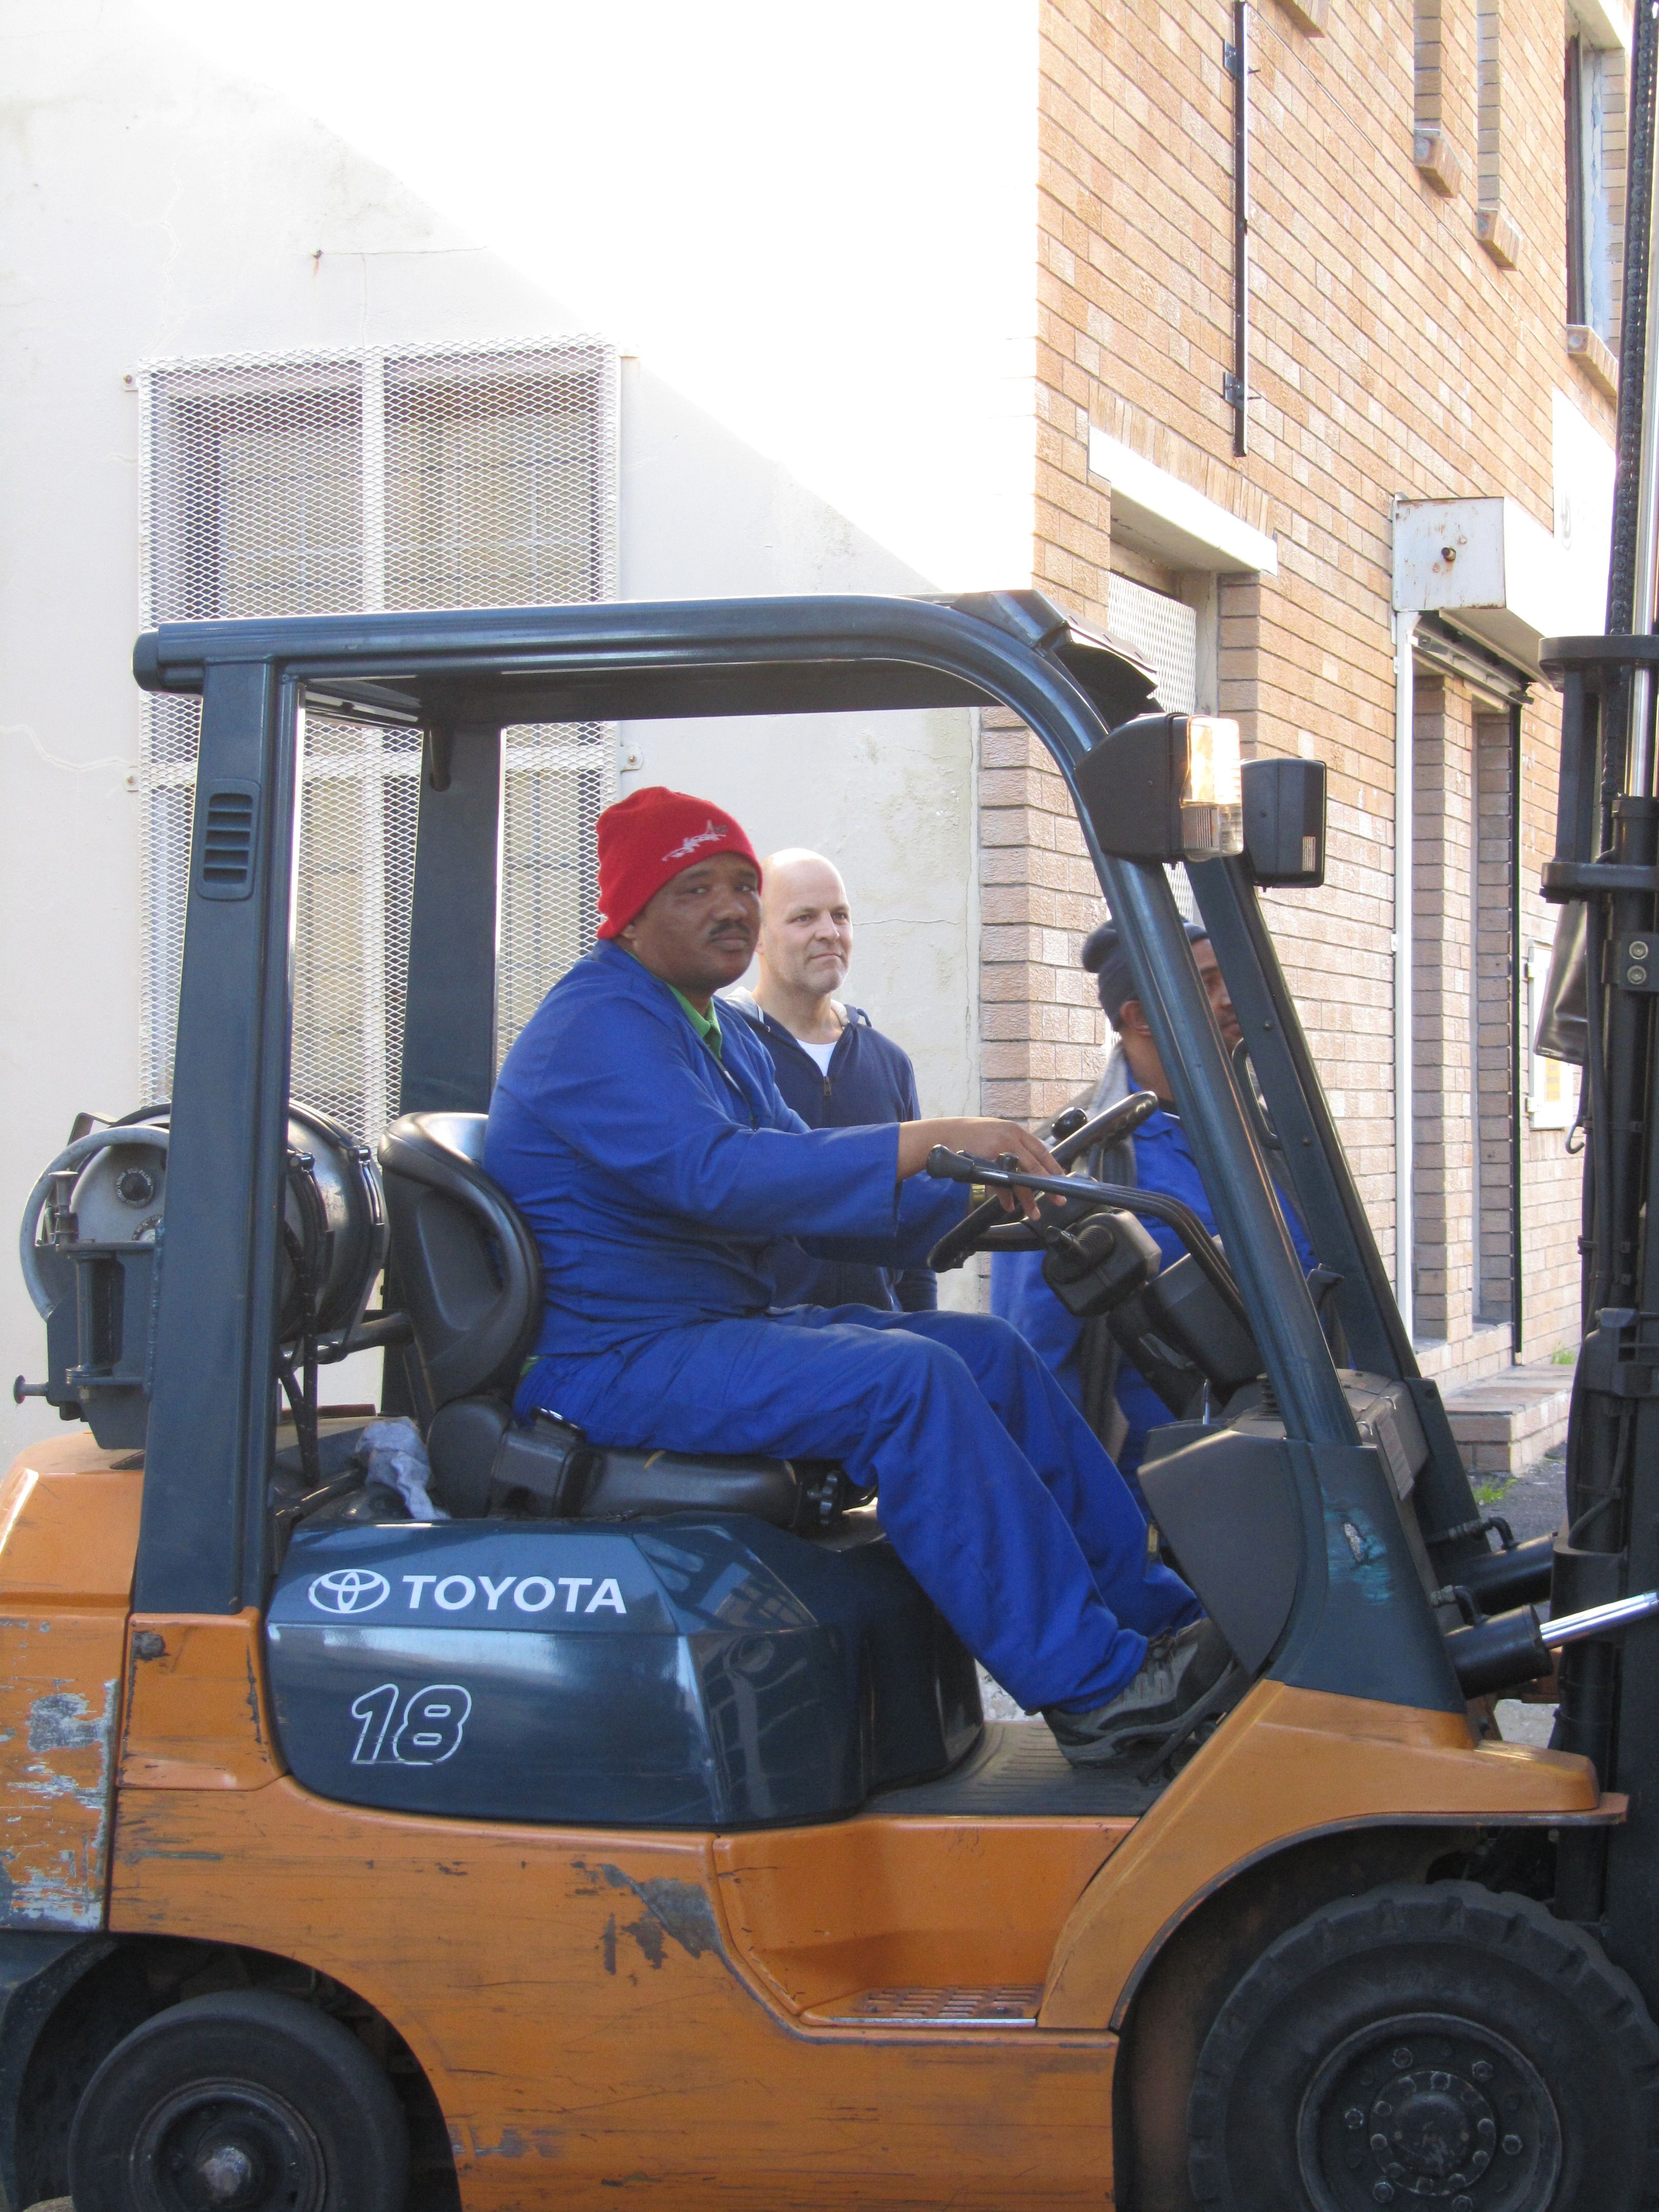 Our new friend, the forklift driver